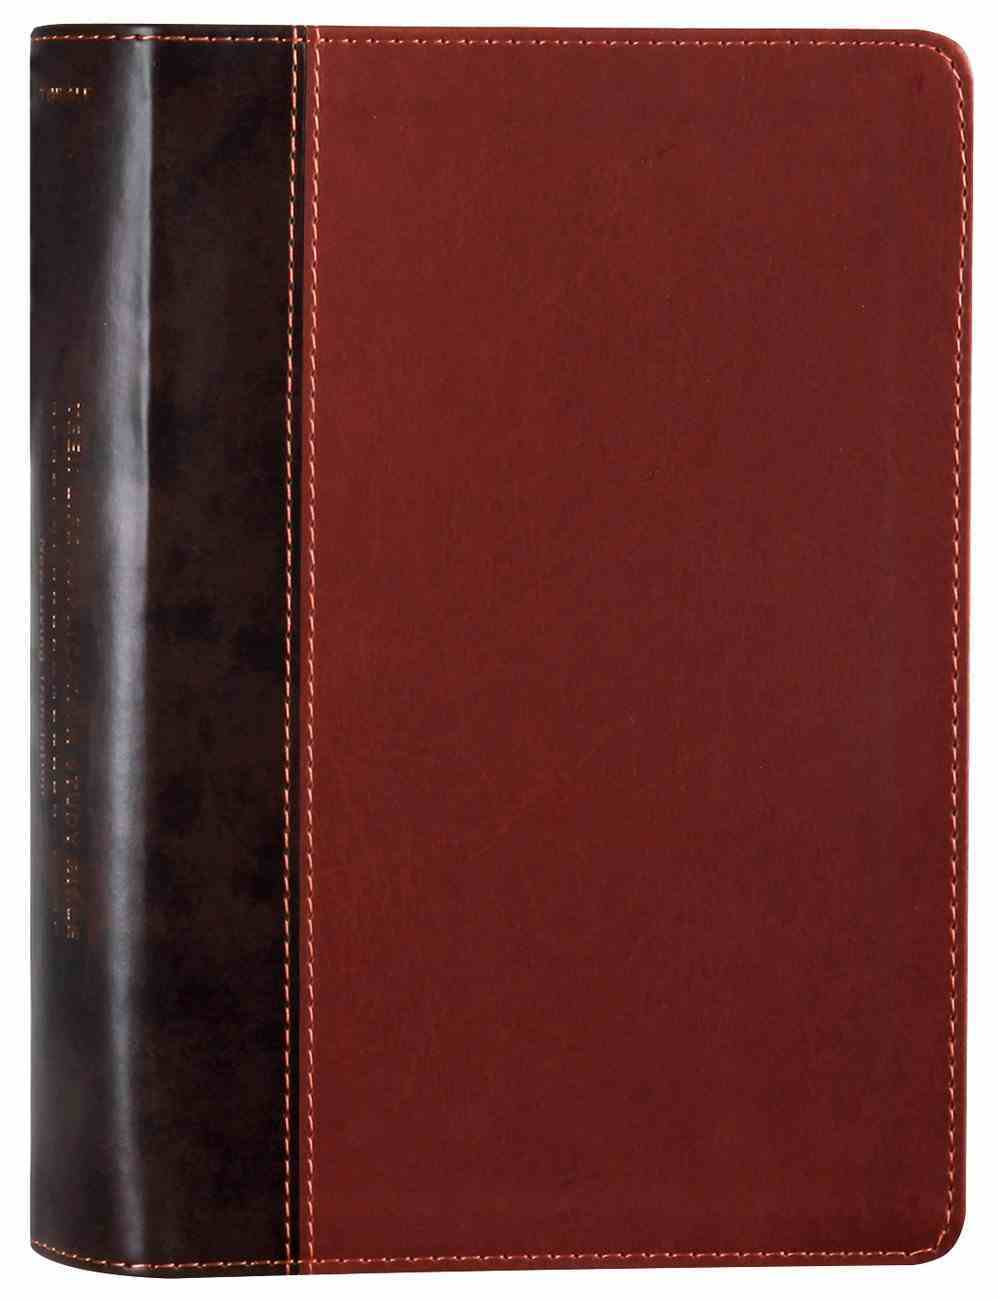 NLT Teen Life Application Study Bible Brown (Black Letter Edition) Imitation Leather